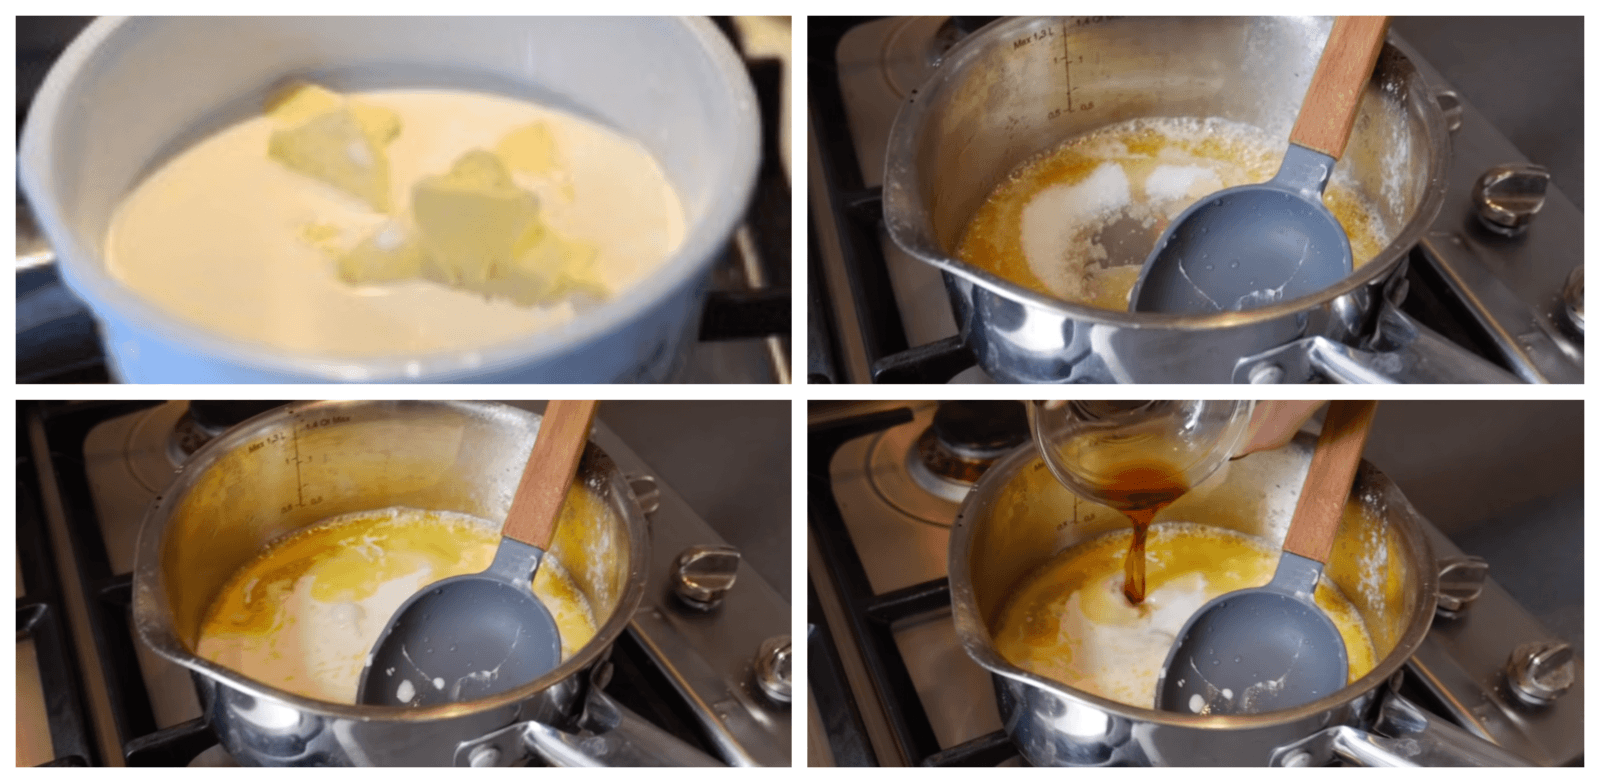 making the sauce to decorate the cake